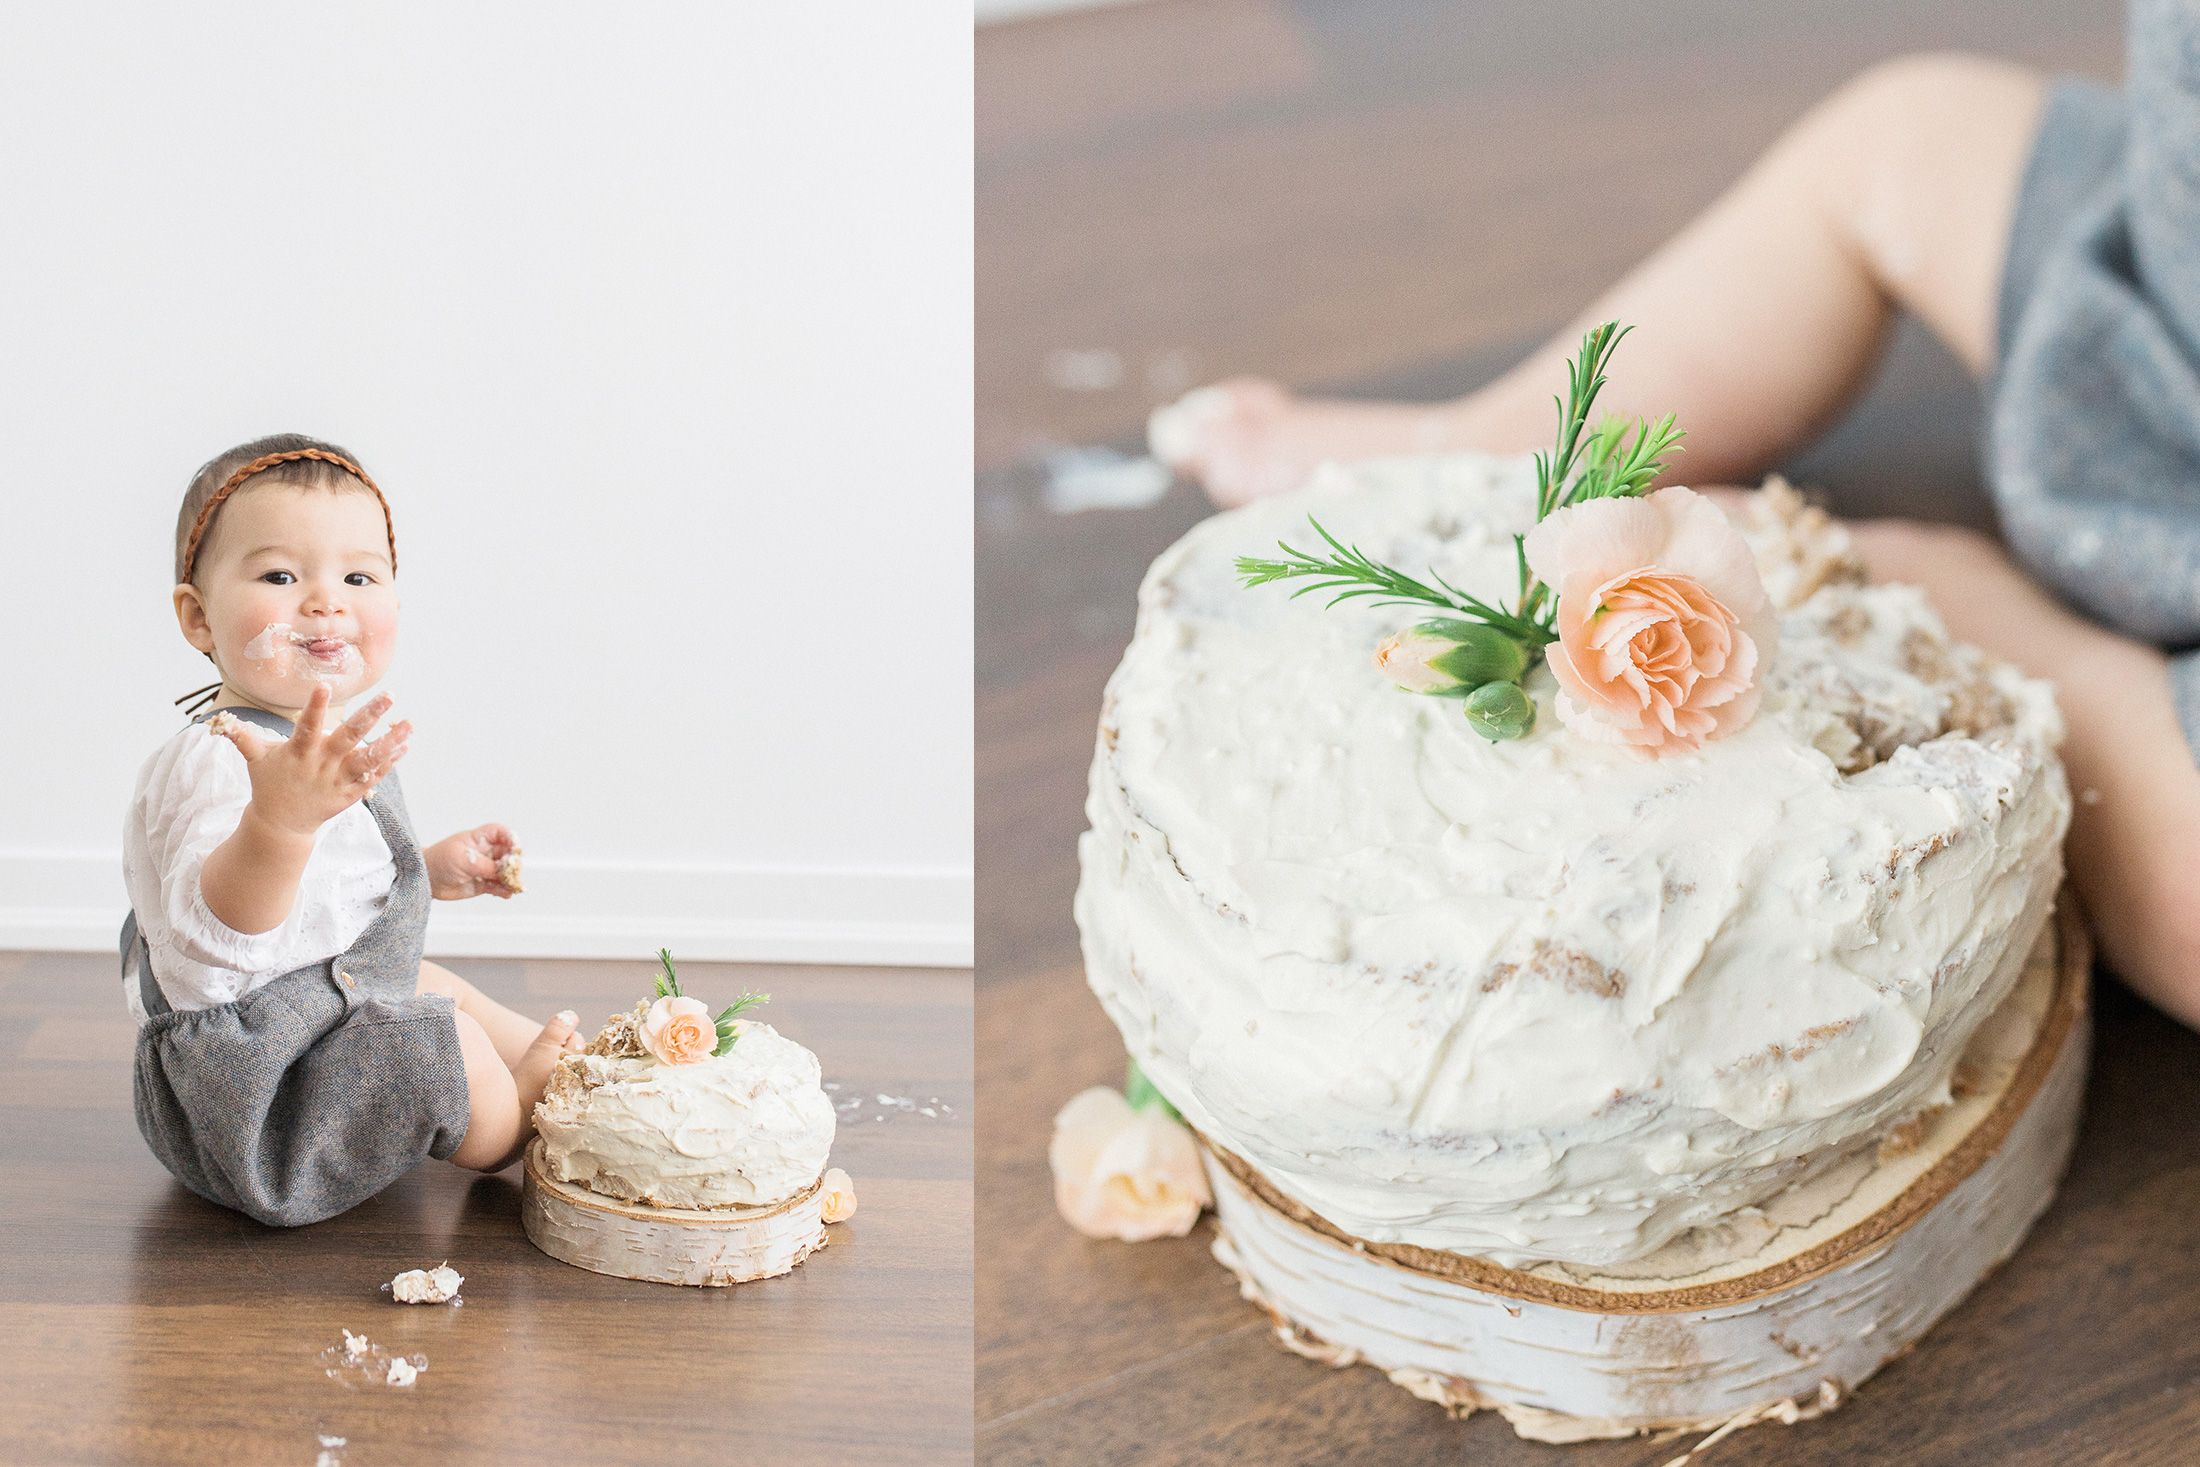 Recipe Healthy Sugar Free Smash Cake For Baby S Birthday With